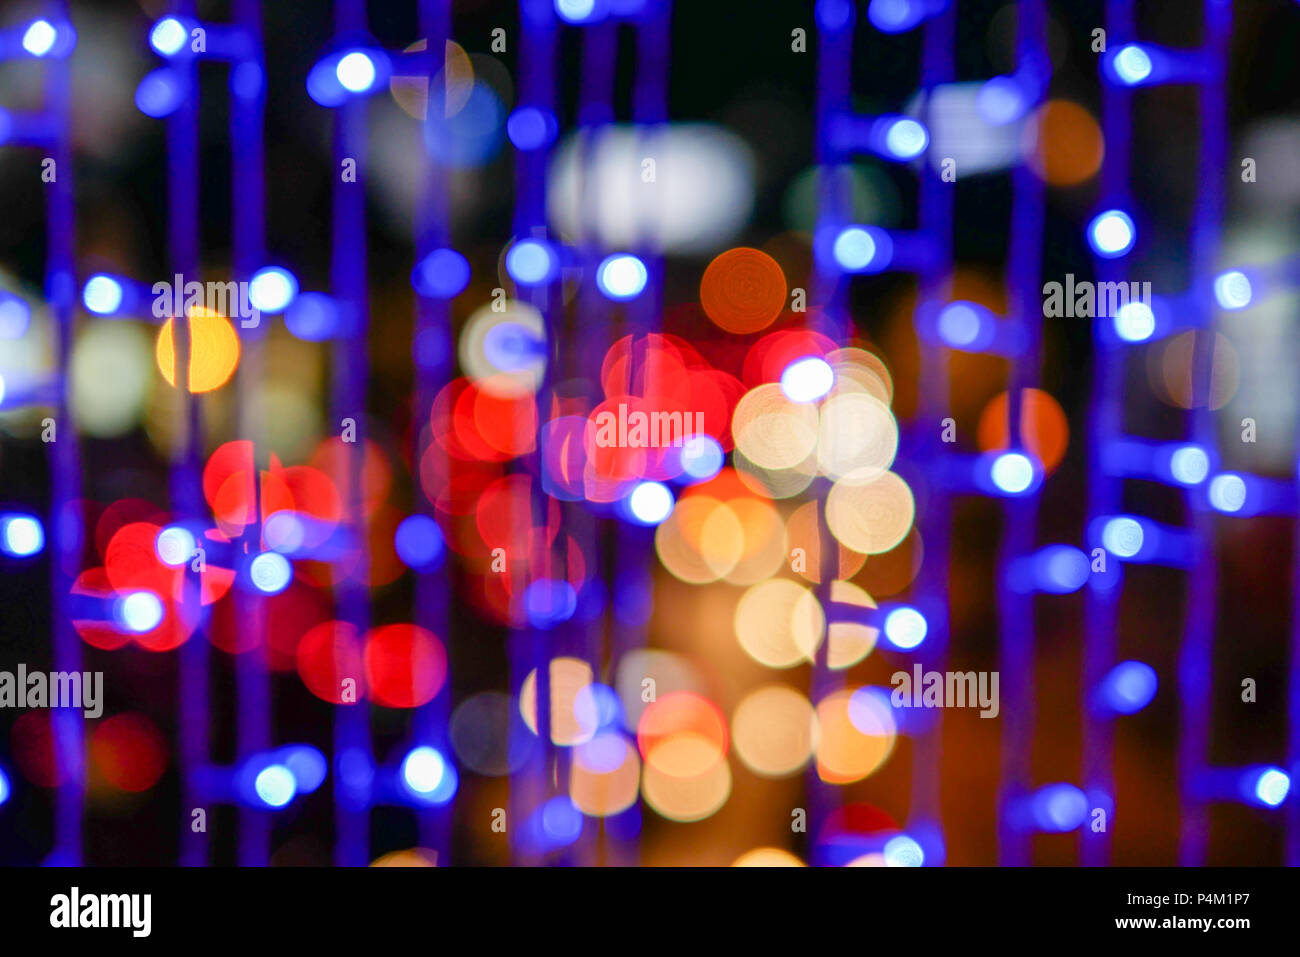 Defocused Of Beautiful Urban Abstract Texture Bokeh City Lights And Traffic Jams In The Background With Blurring Lights In The City Stock Photo Alamy